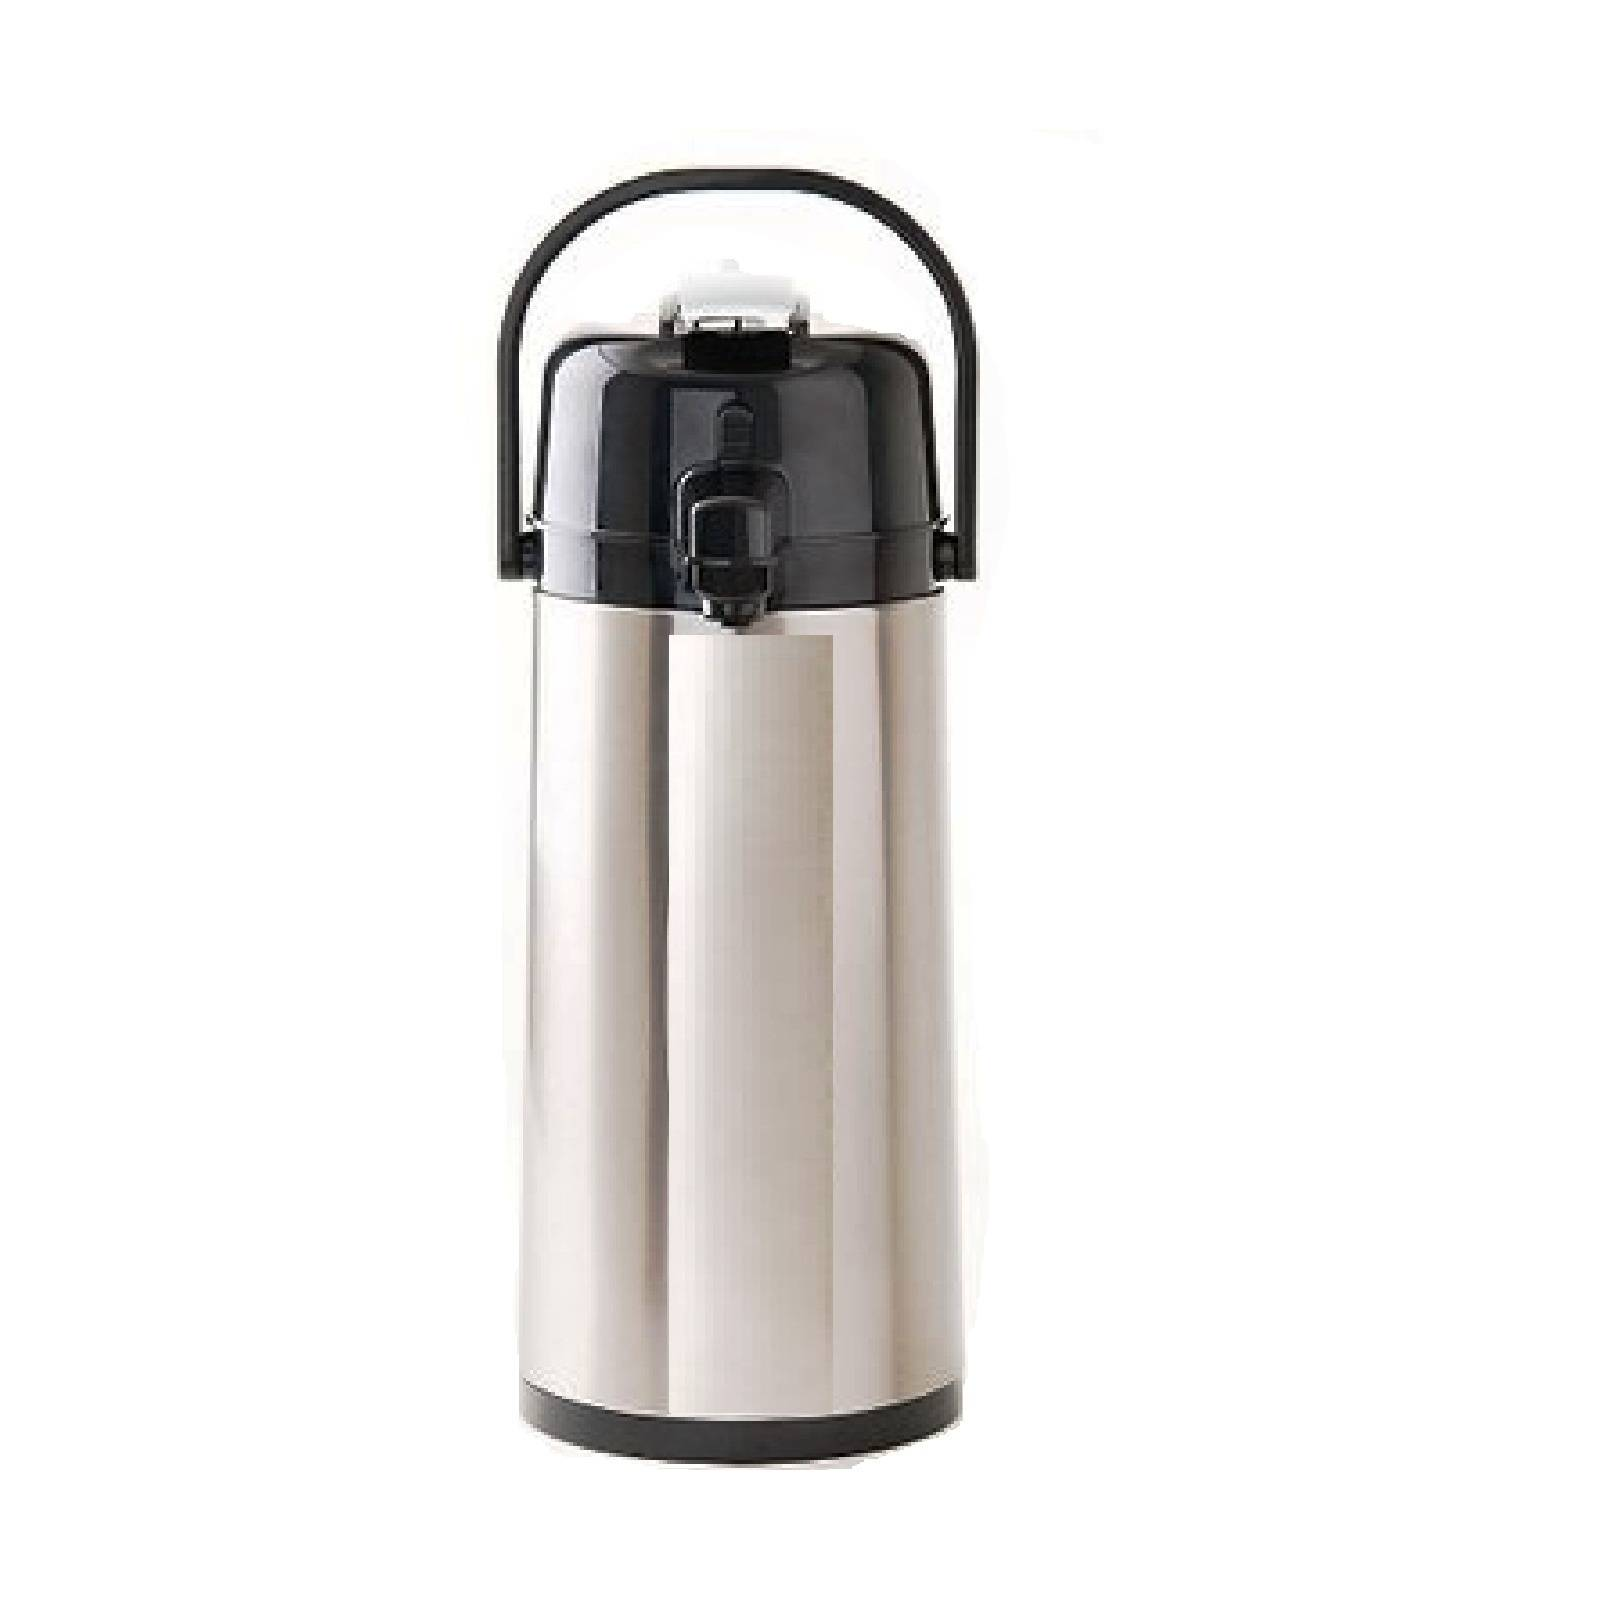 filterkaffeemaschine thermos m mit airpotkanne 2 2 l. Black Bedroom Furniture Sets. Home Design Ideas